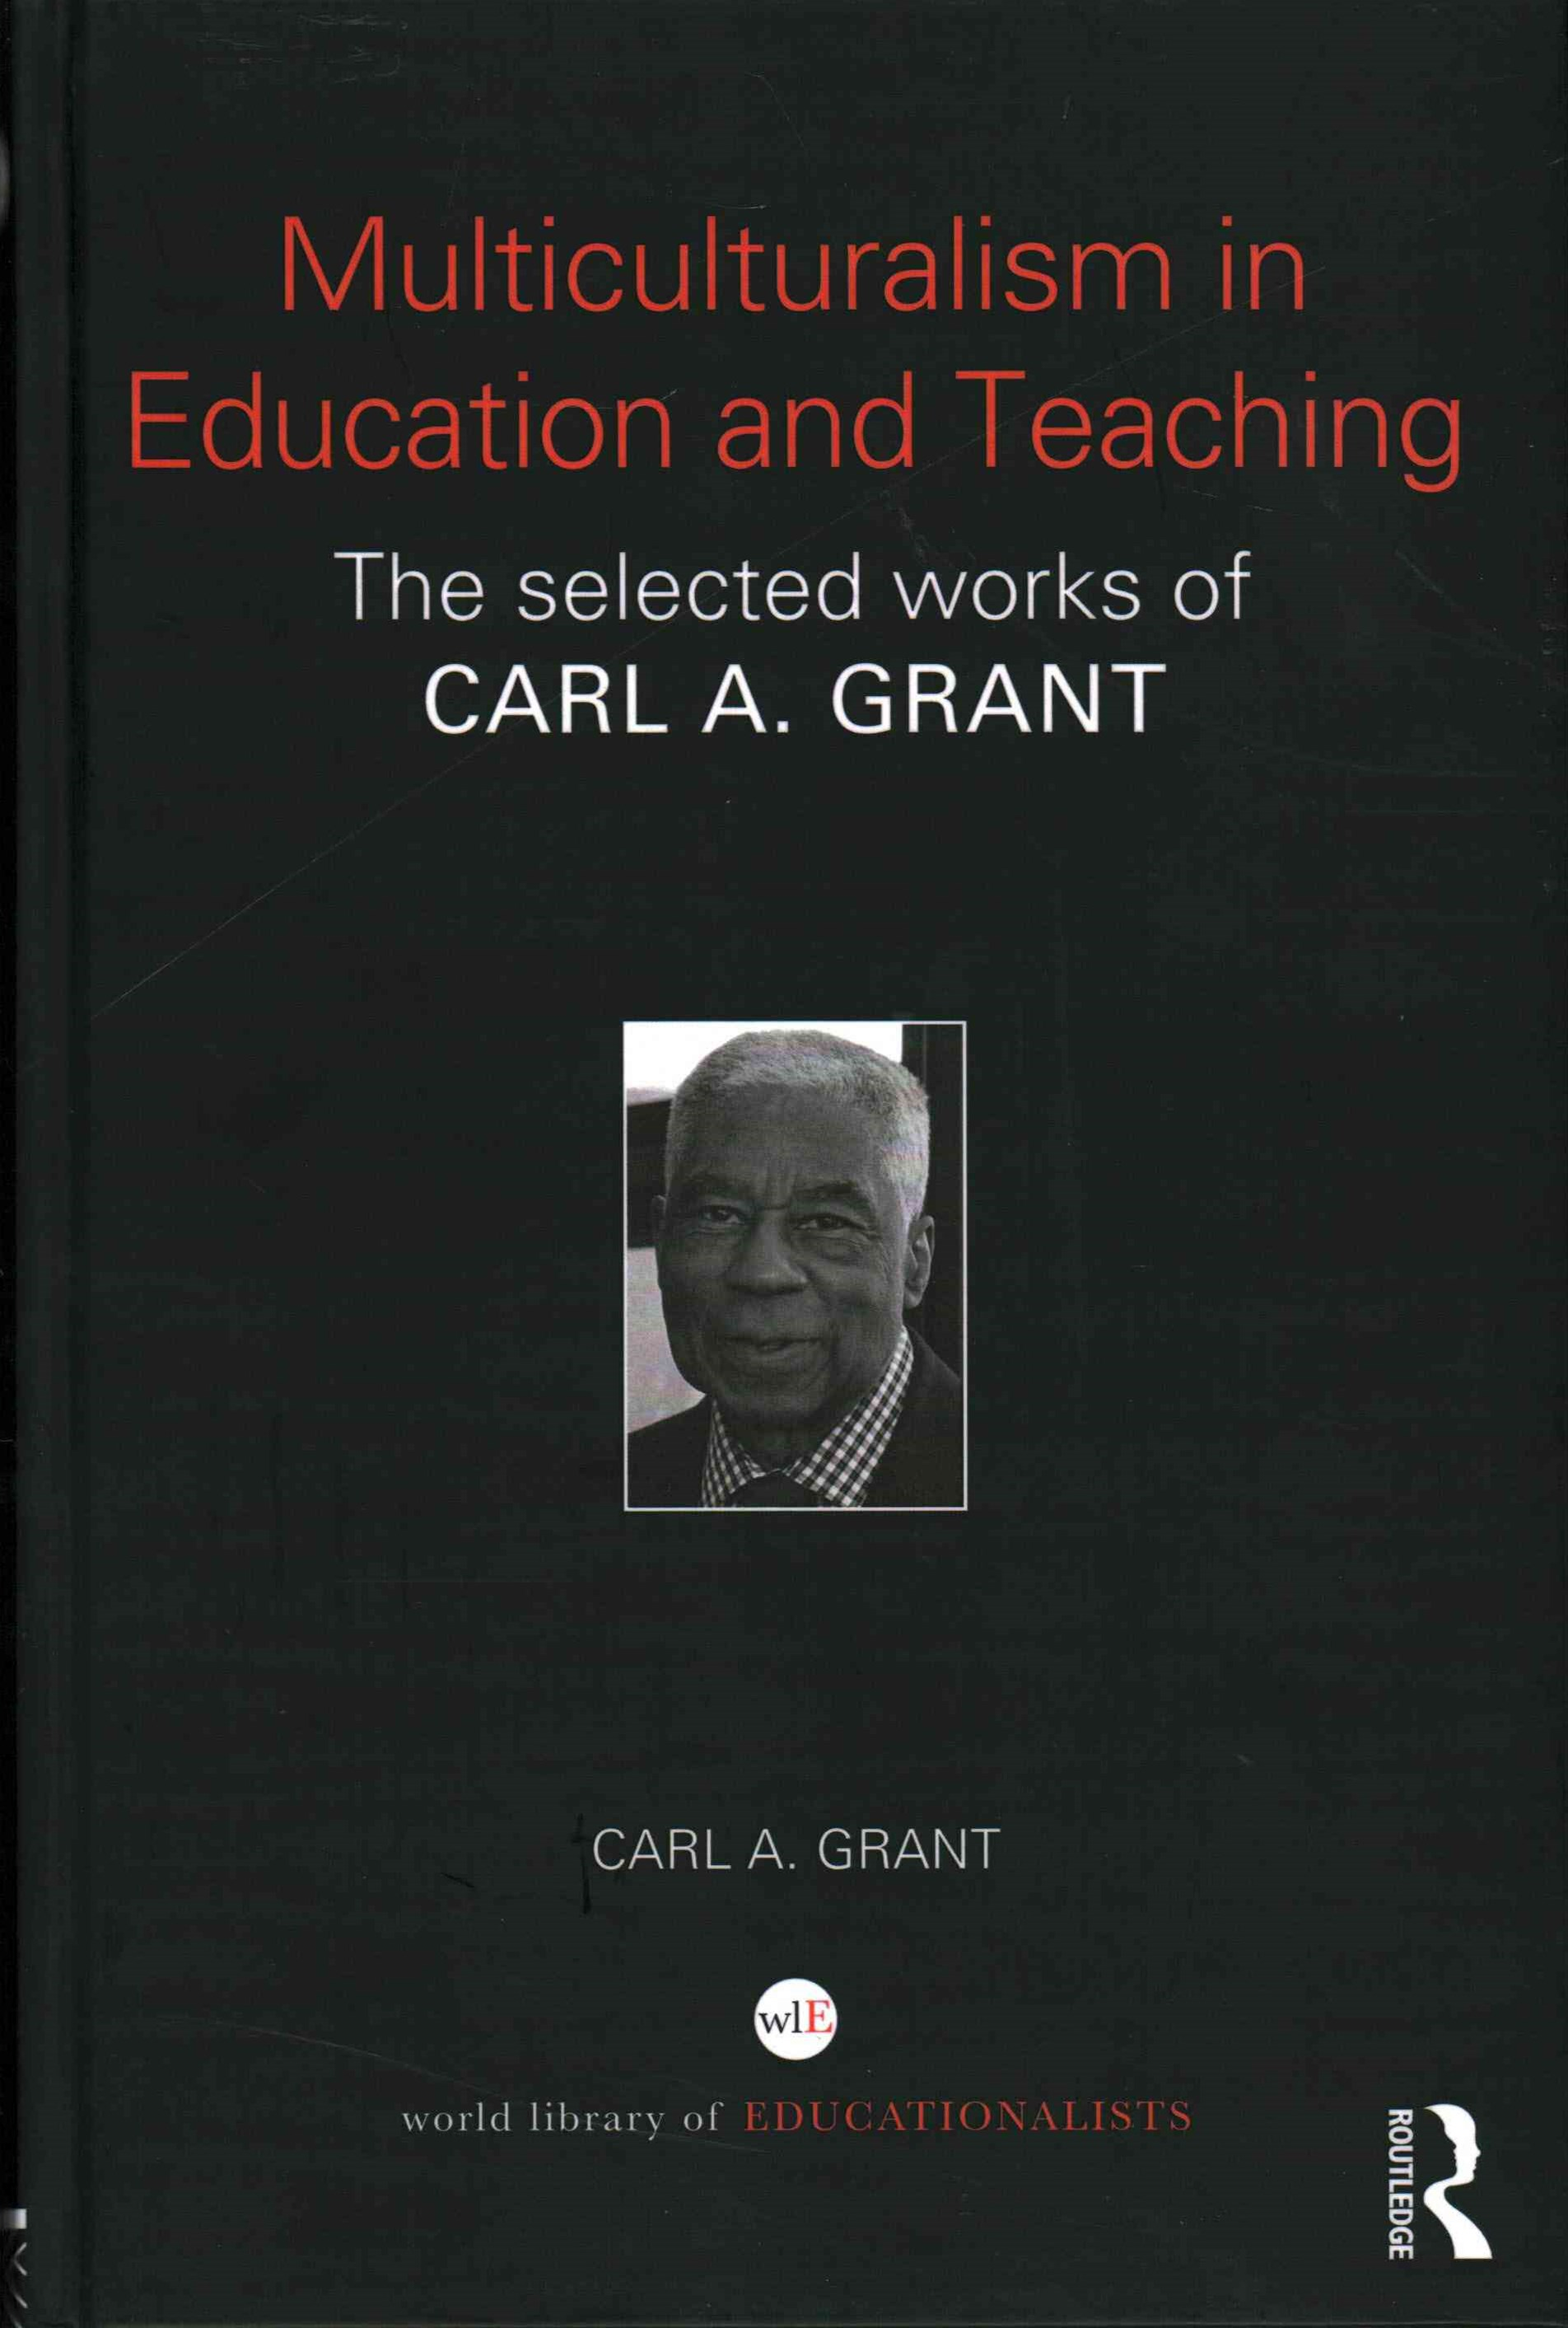 The Selected Works of Carl Grant